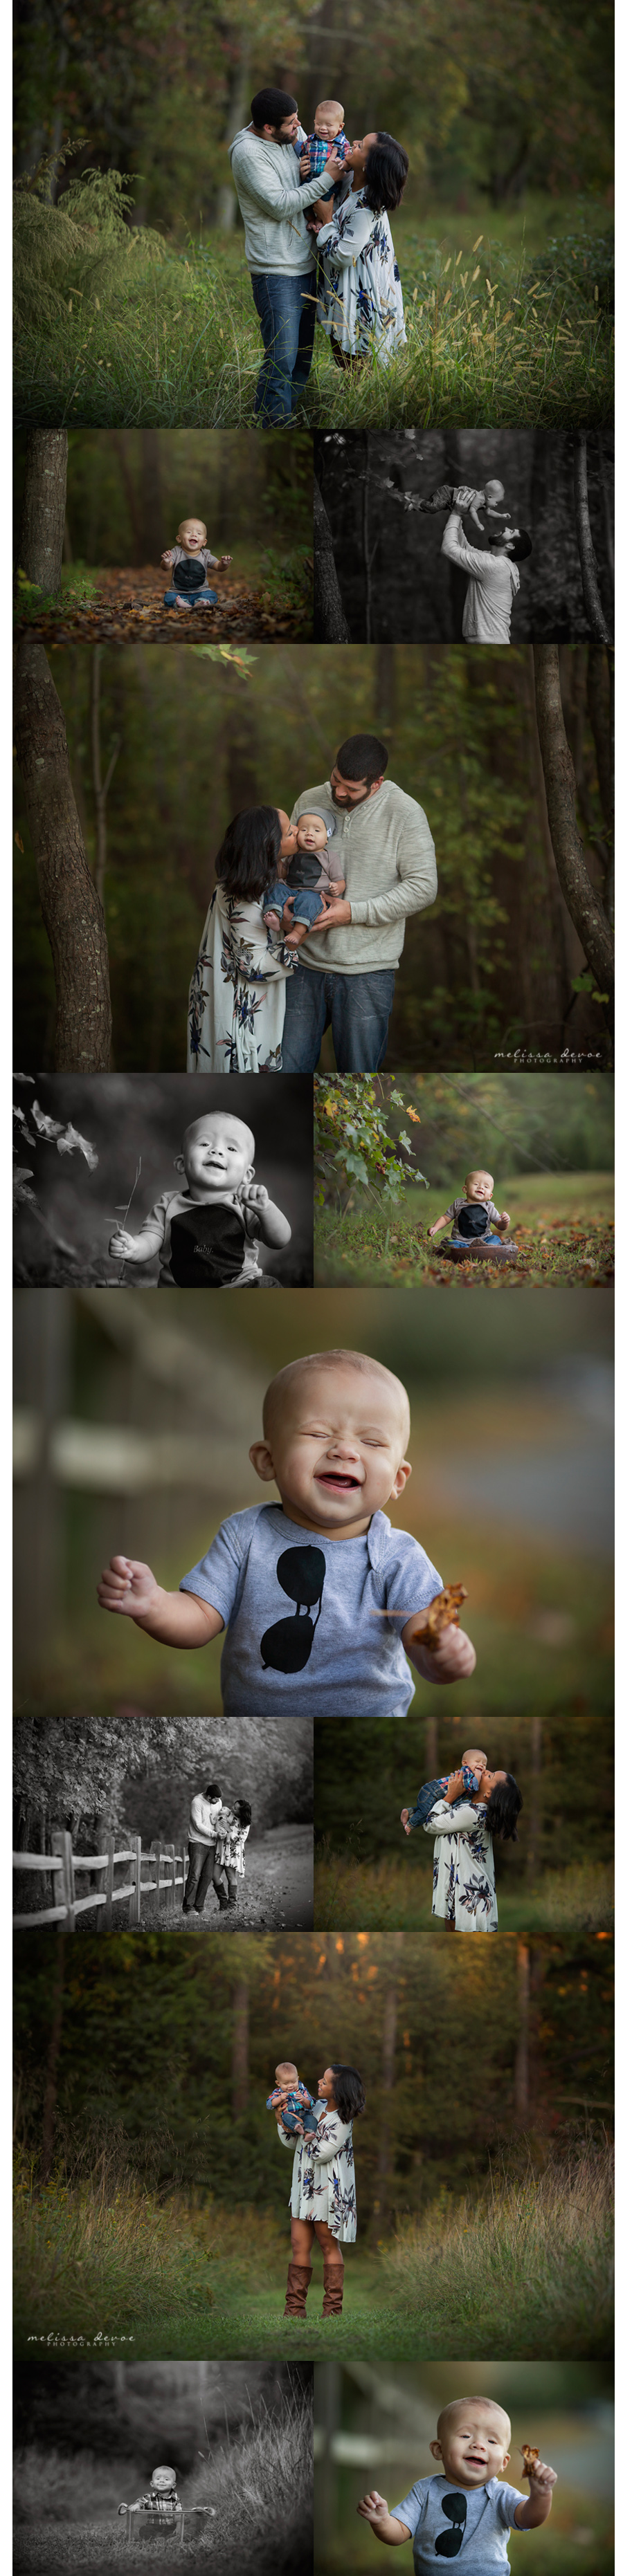 Melissa DeVoe Photography Raleigh Baby Child Family Photographer 2